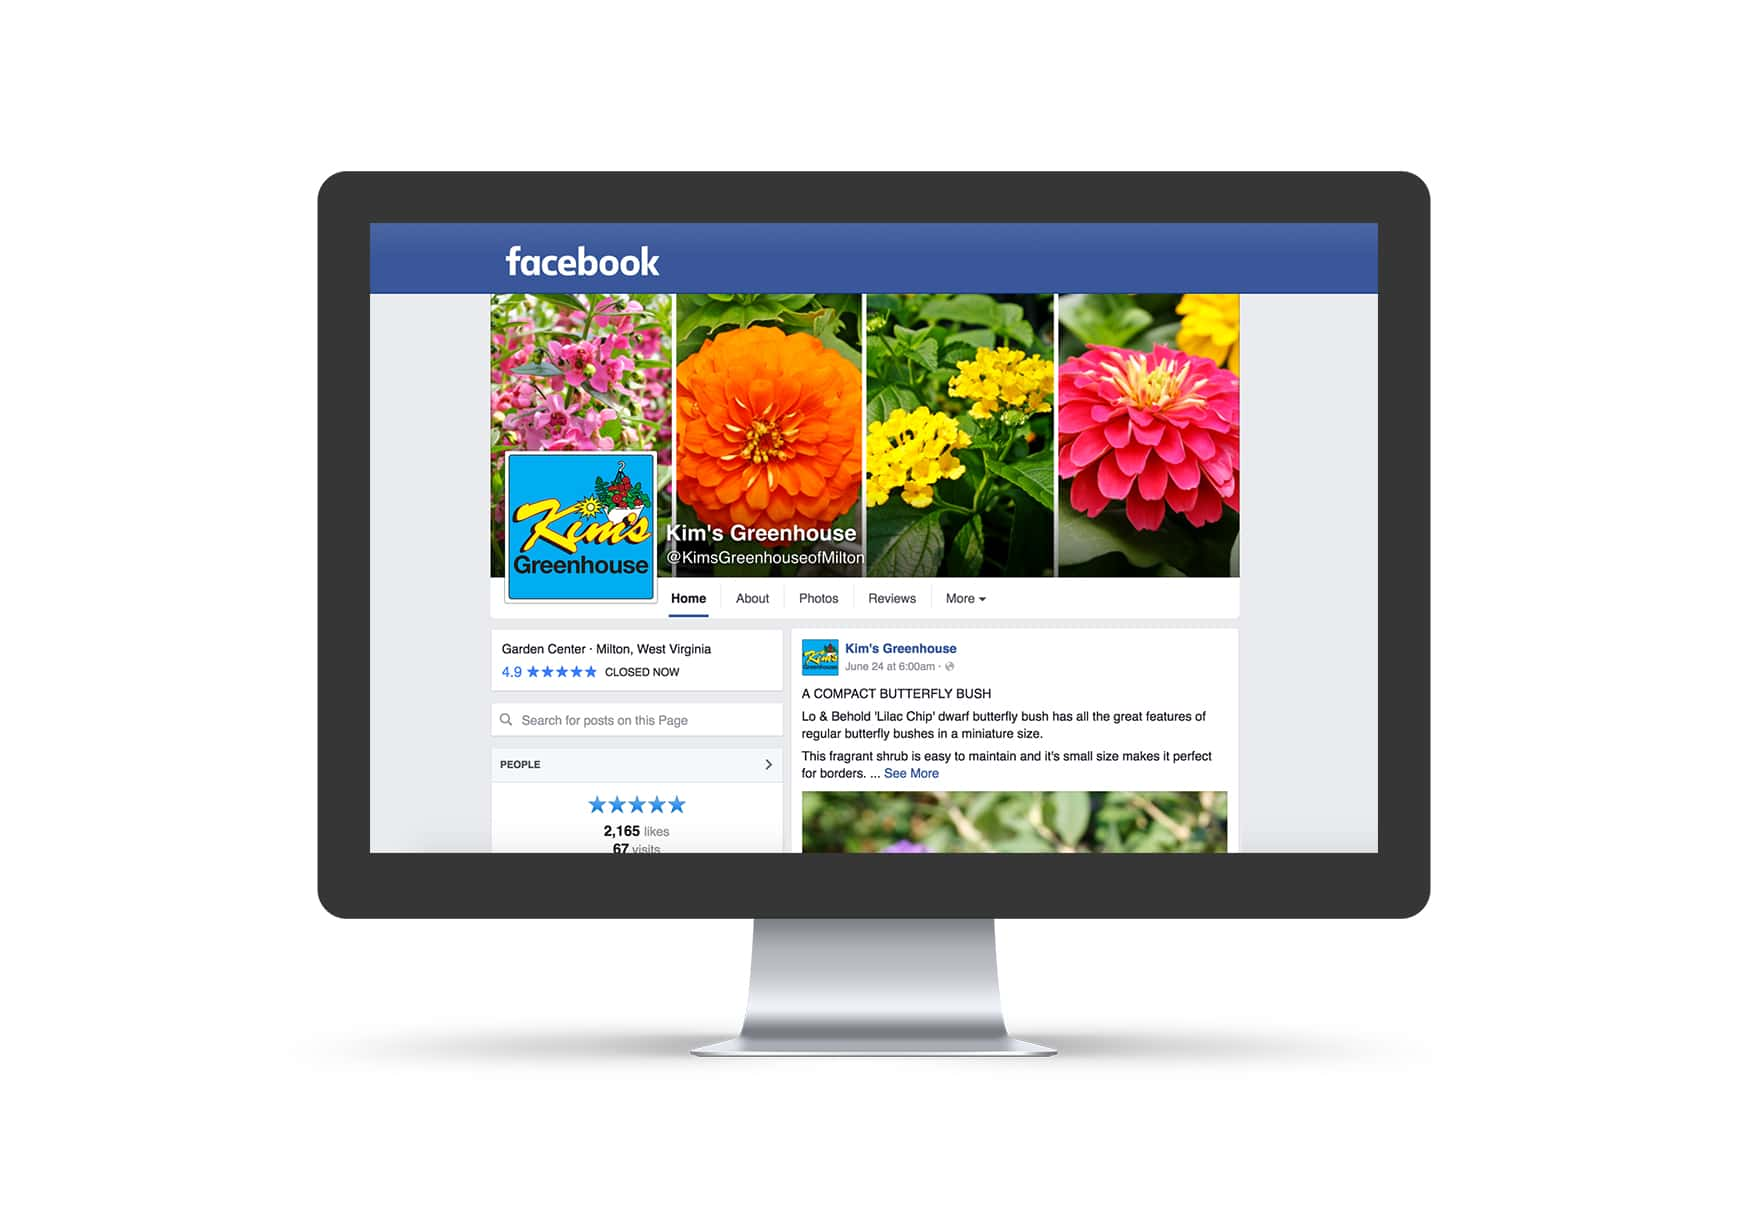 Social Media Marketing - Kim's Greenhouse